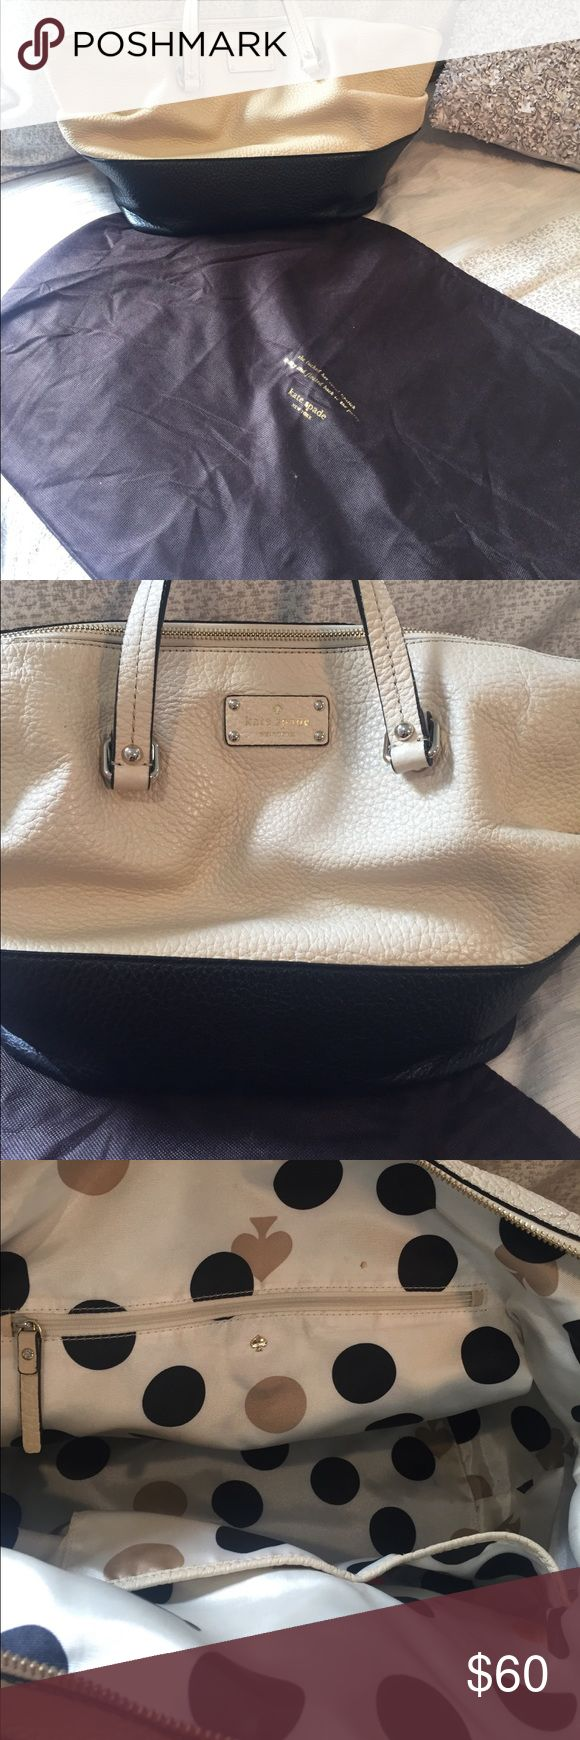 Kate Spade pebble leather bag Kate Spade Black and Tan pebble leather bag, gently used, make up and pen stains on interior, dust bag included kate spade Bags Shoulder Bags